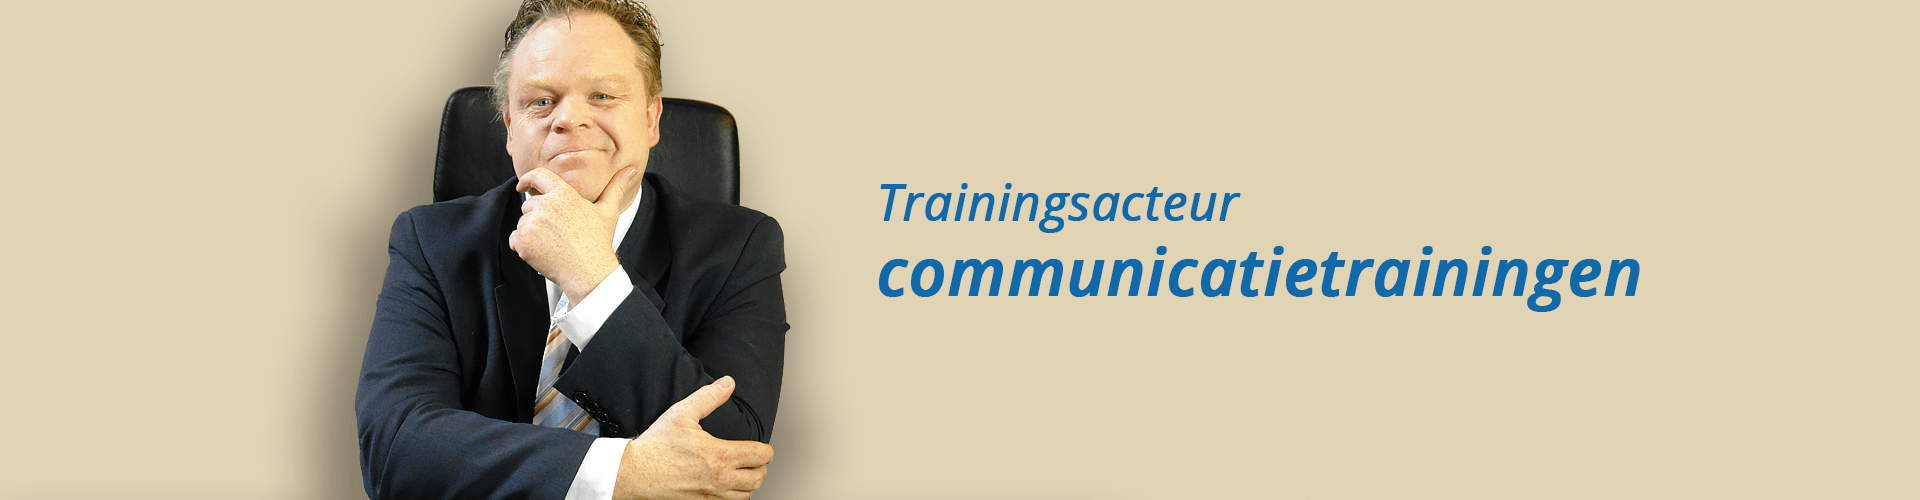 Trainingsacteur communicatietrainingen